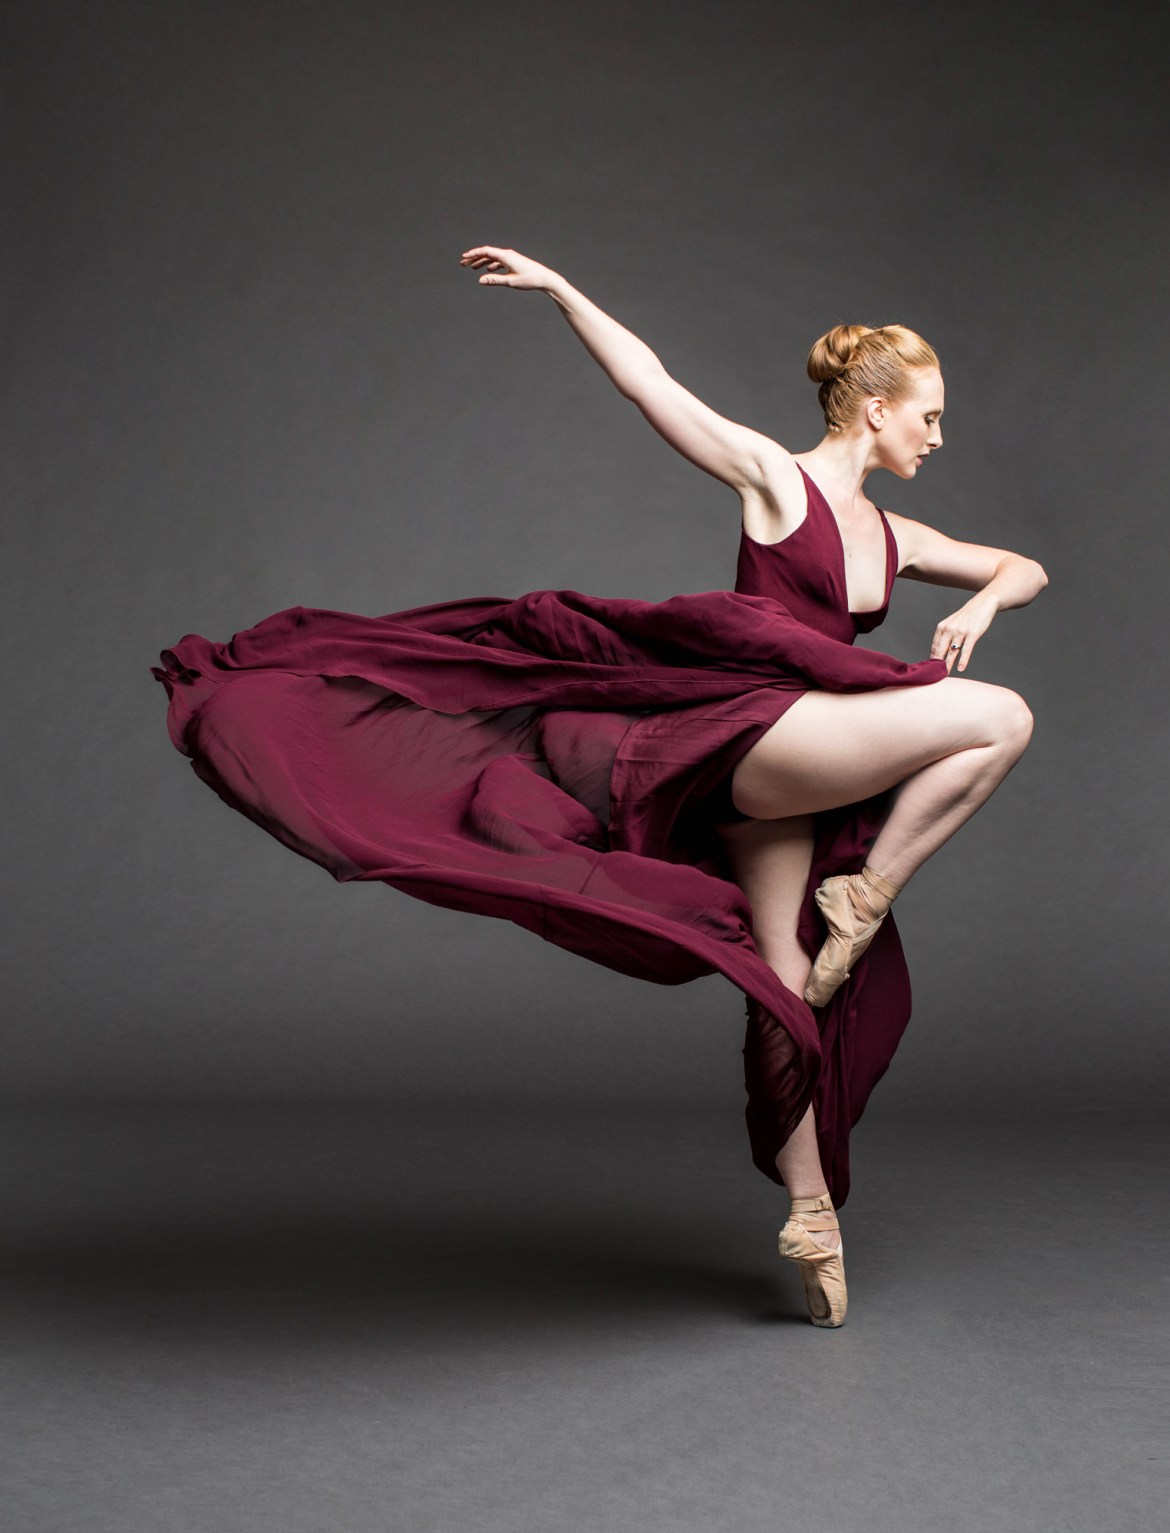 Dancer: Jordan Mercer Photo: Cheryl Mann - Cheryl Mann Productions